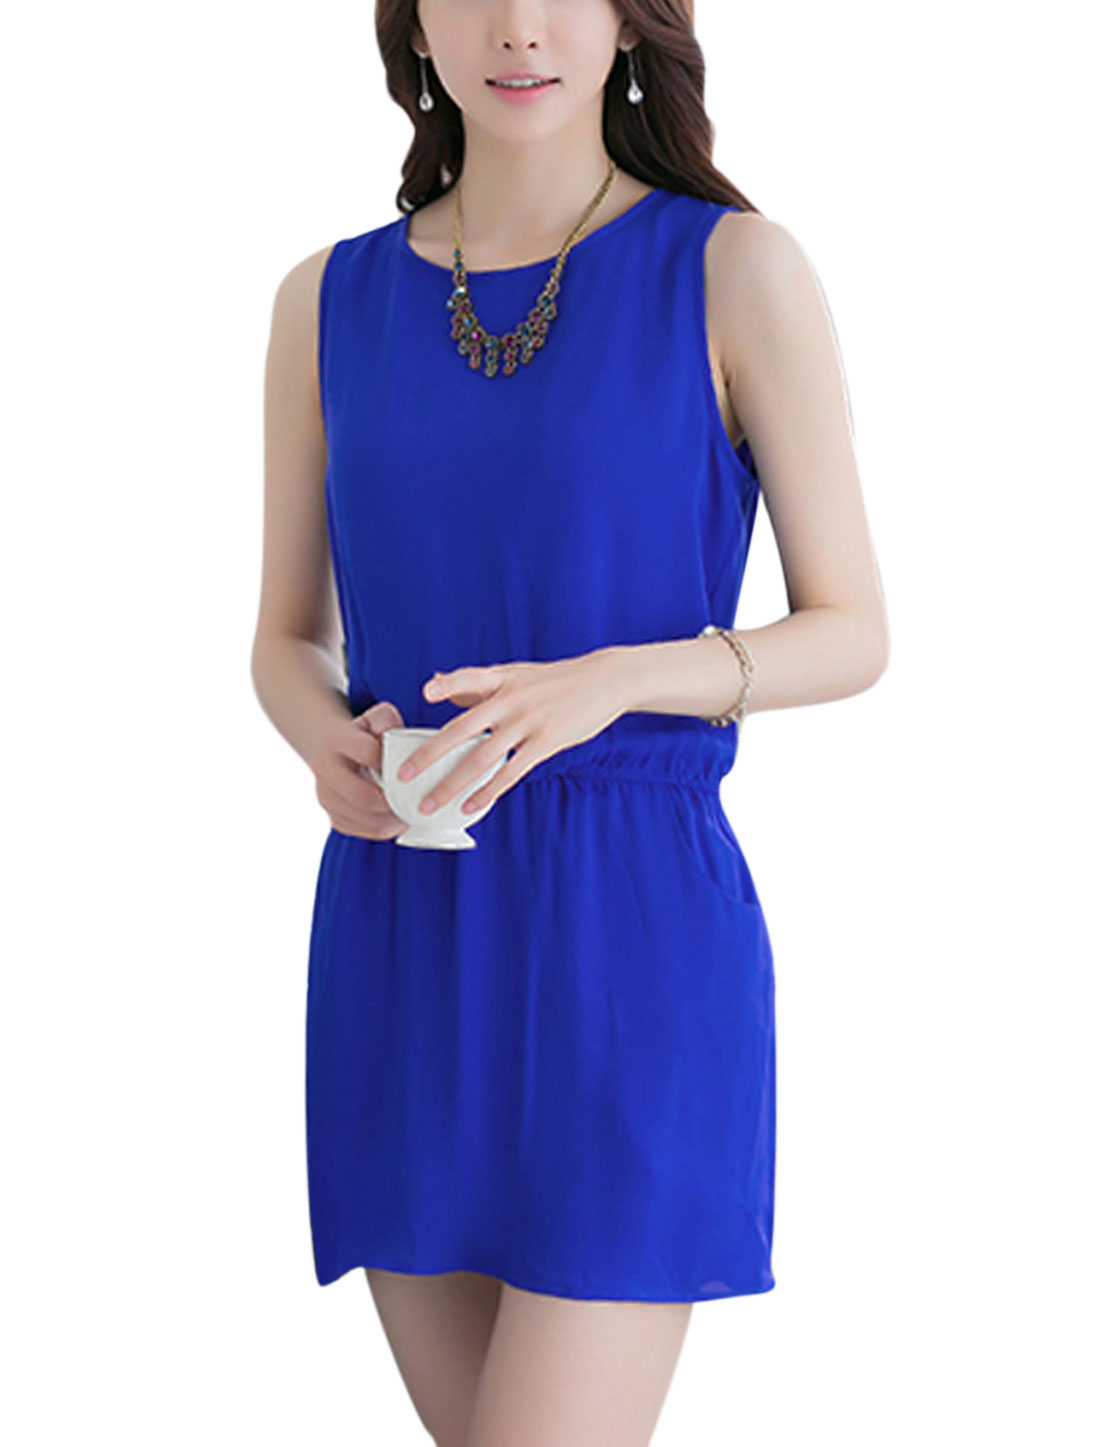 Lady Sleeveless Elastic Waist Unlined Semi Sheer Chiffon Dress Royal Blue S